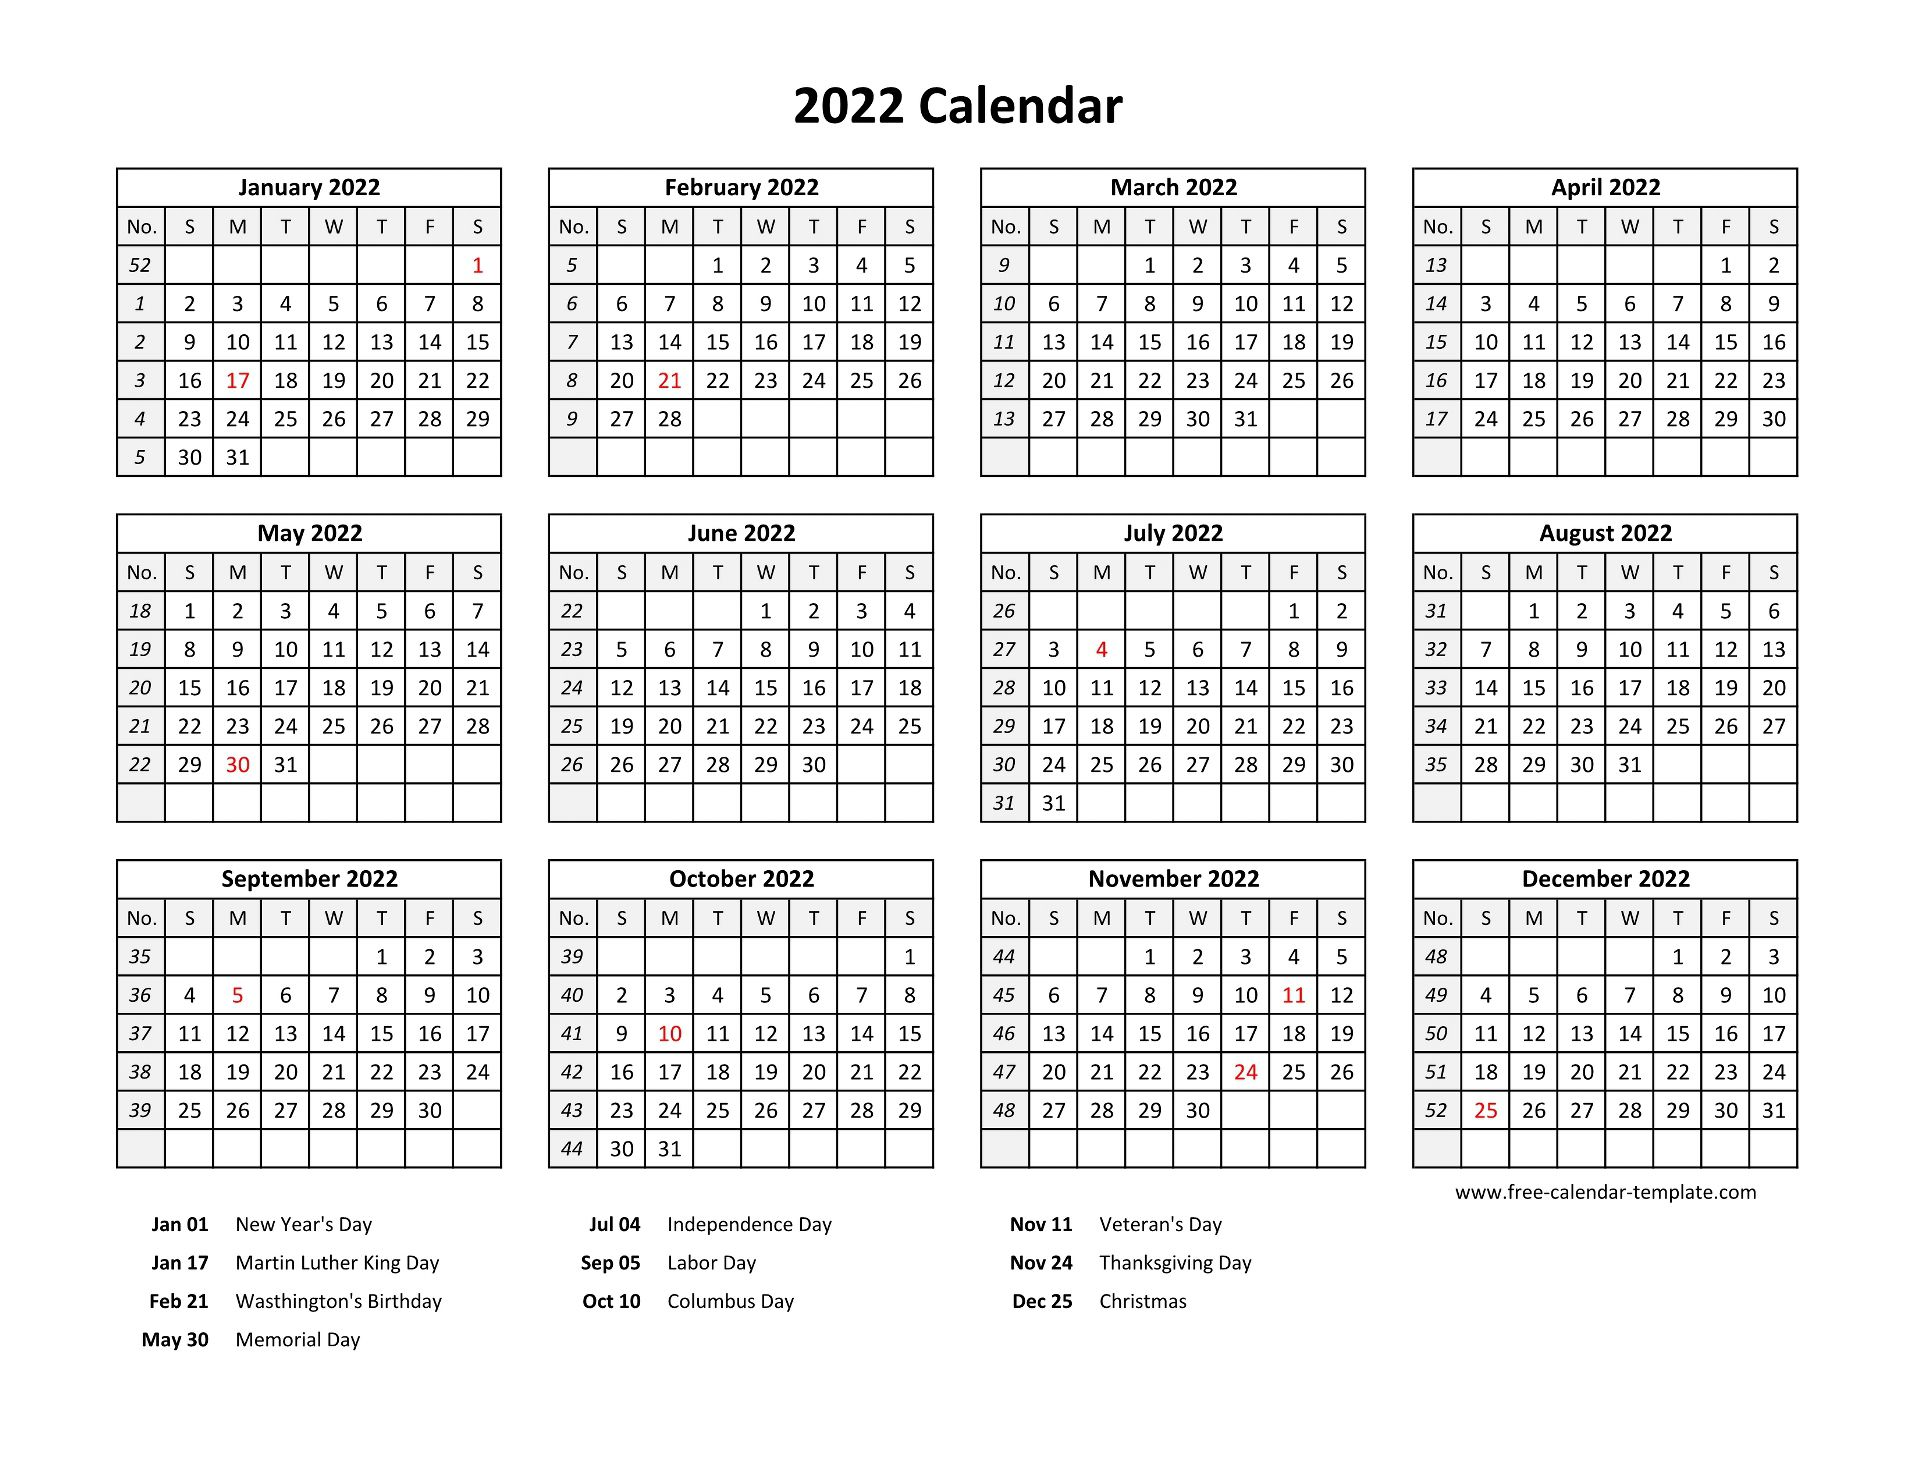 Printable yearly calendar 2022 with US holidays | Free ...